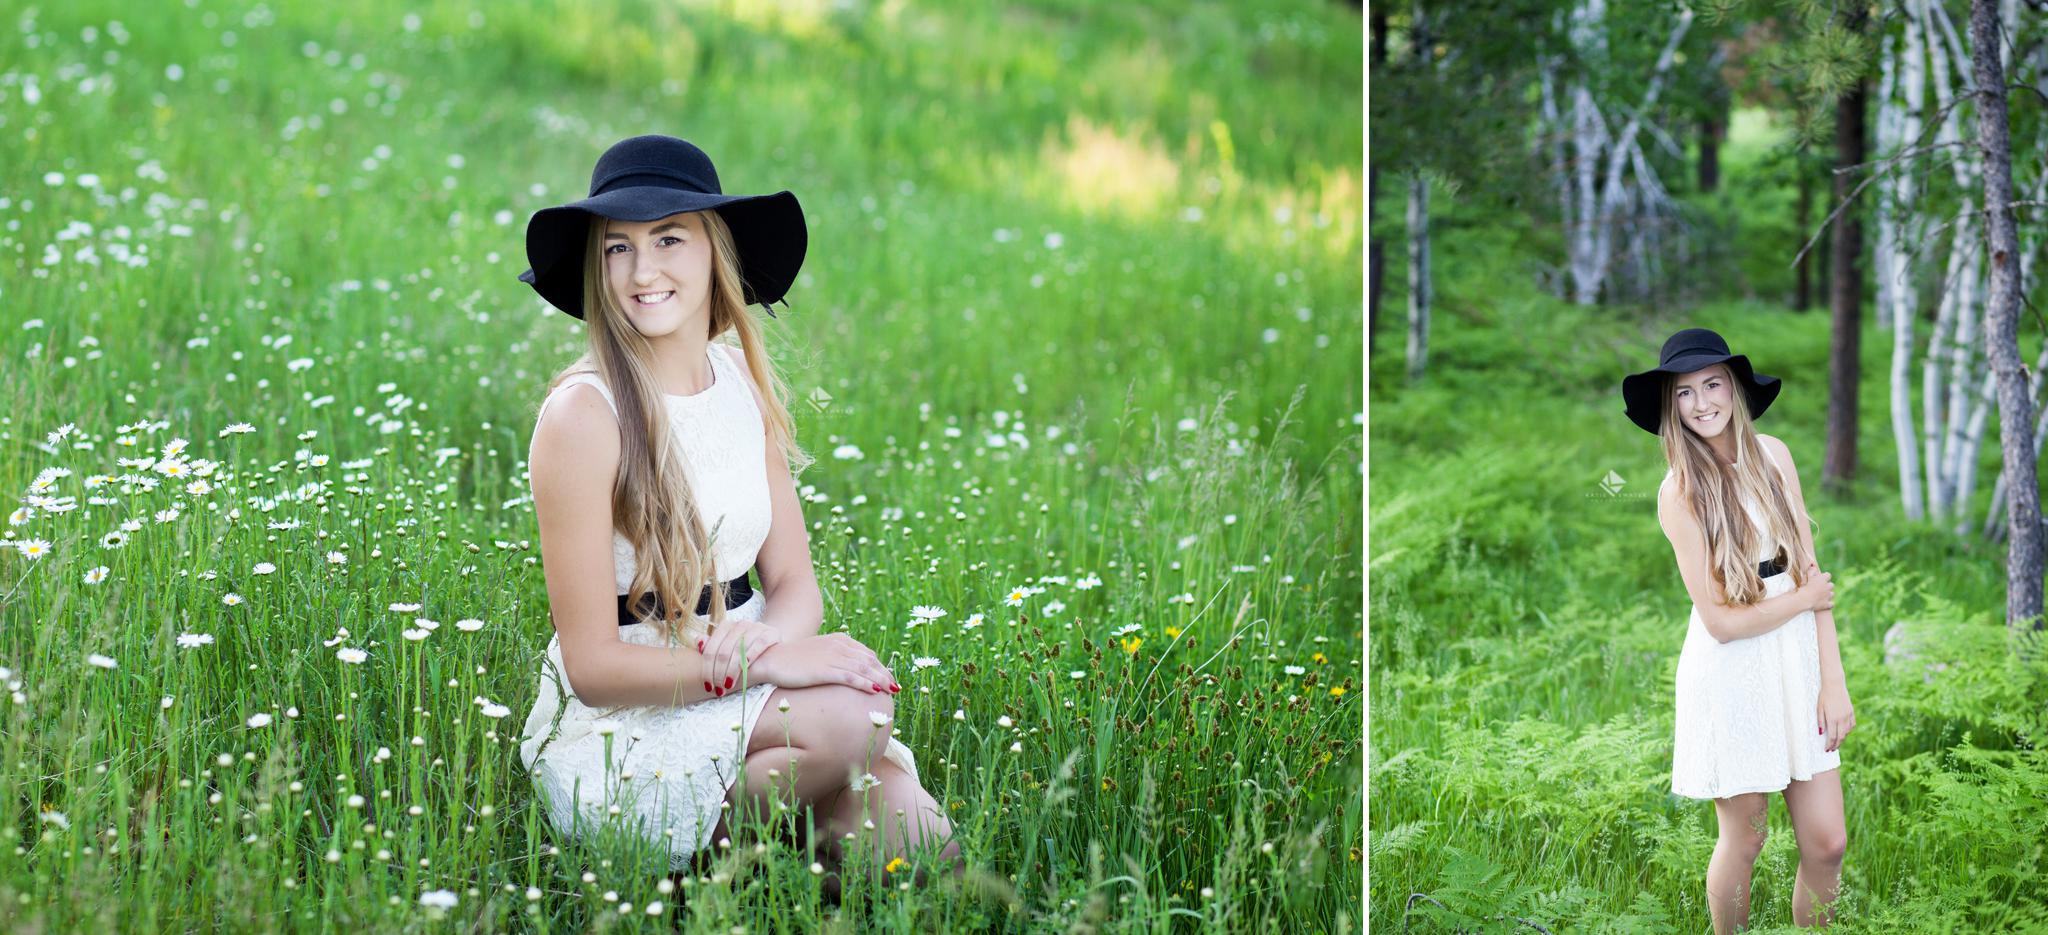 blonde senior girl in a white dress and a black summer hat posing in a wildflower field and among birch trees in the black hills national forest